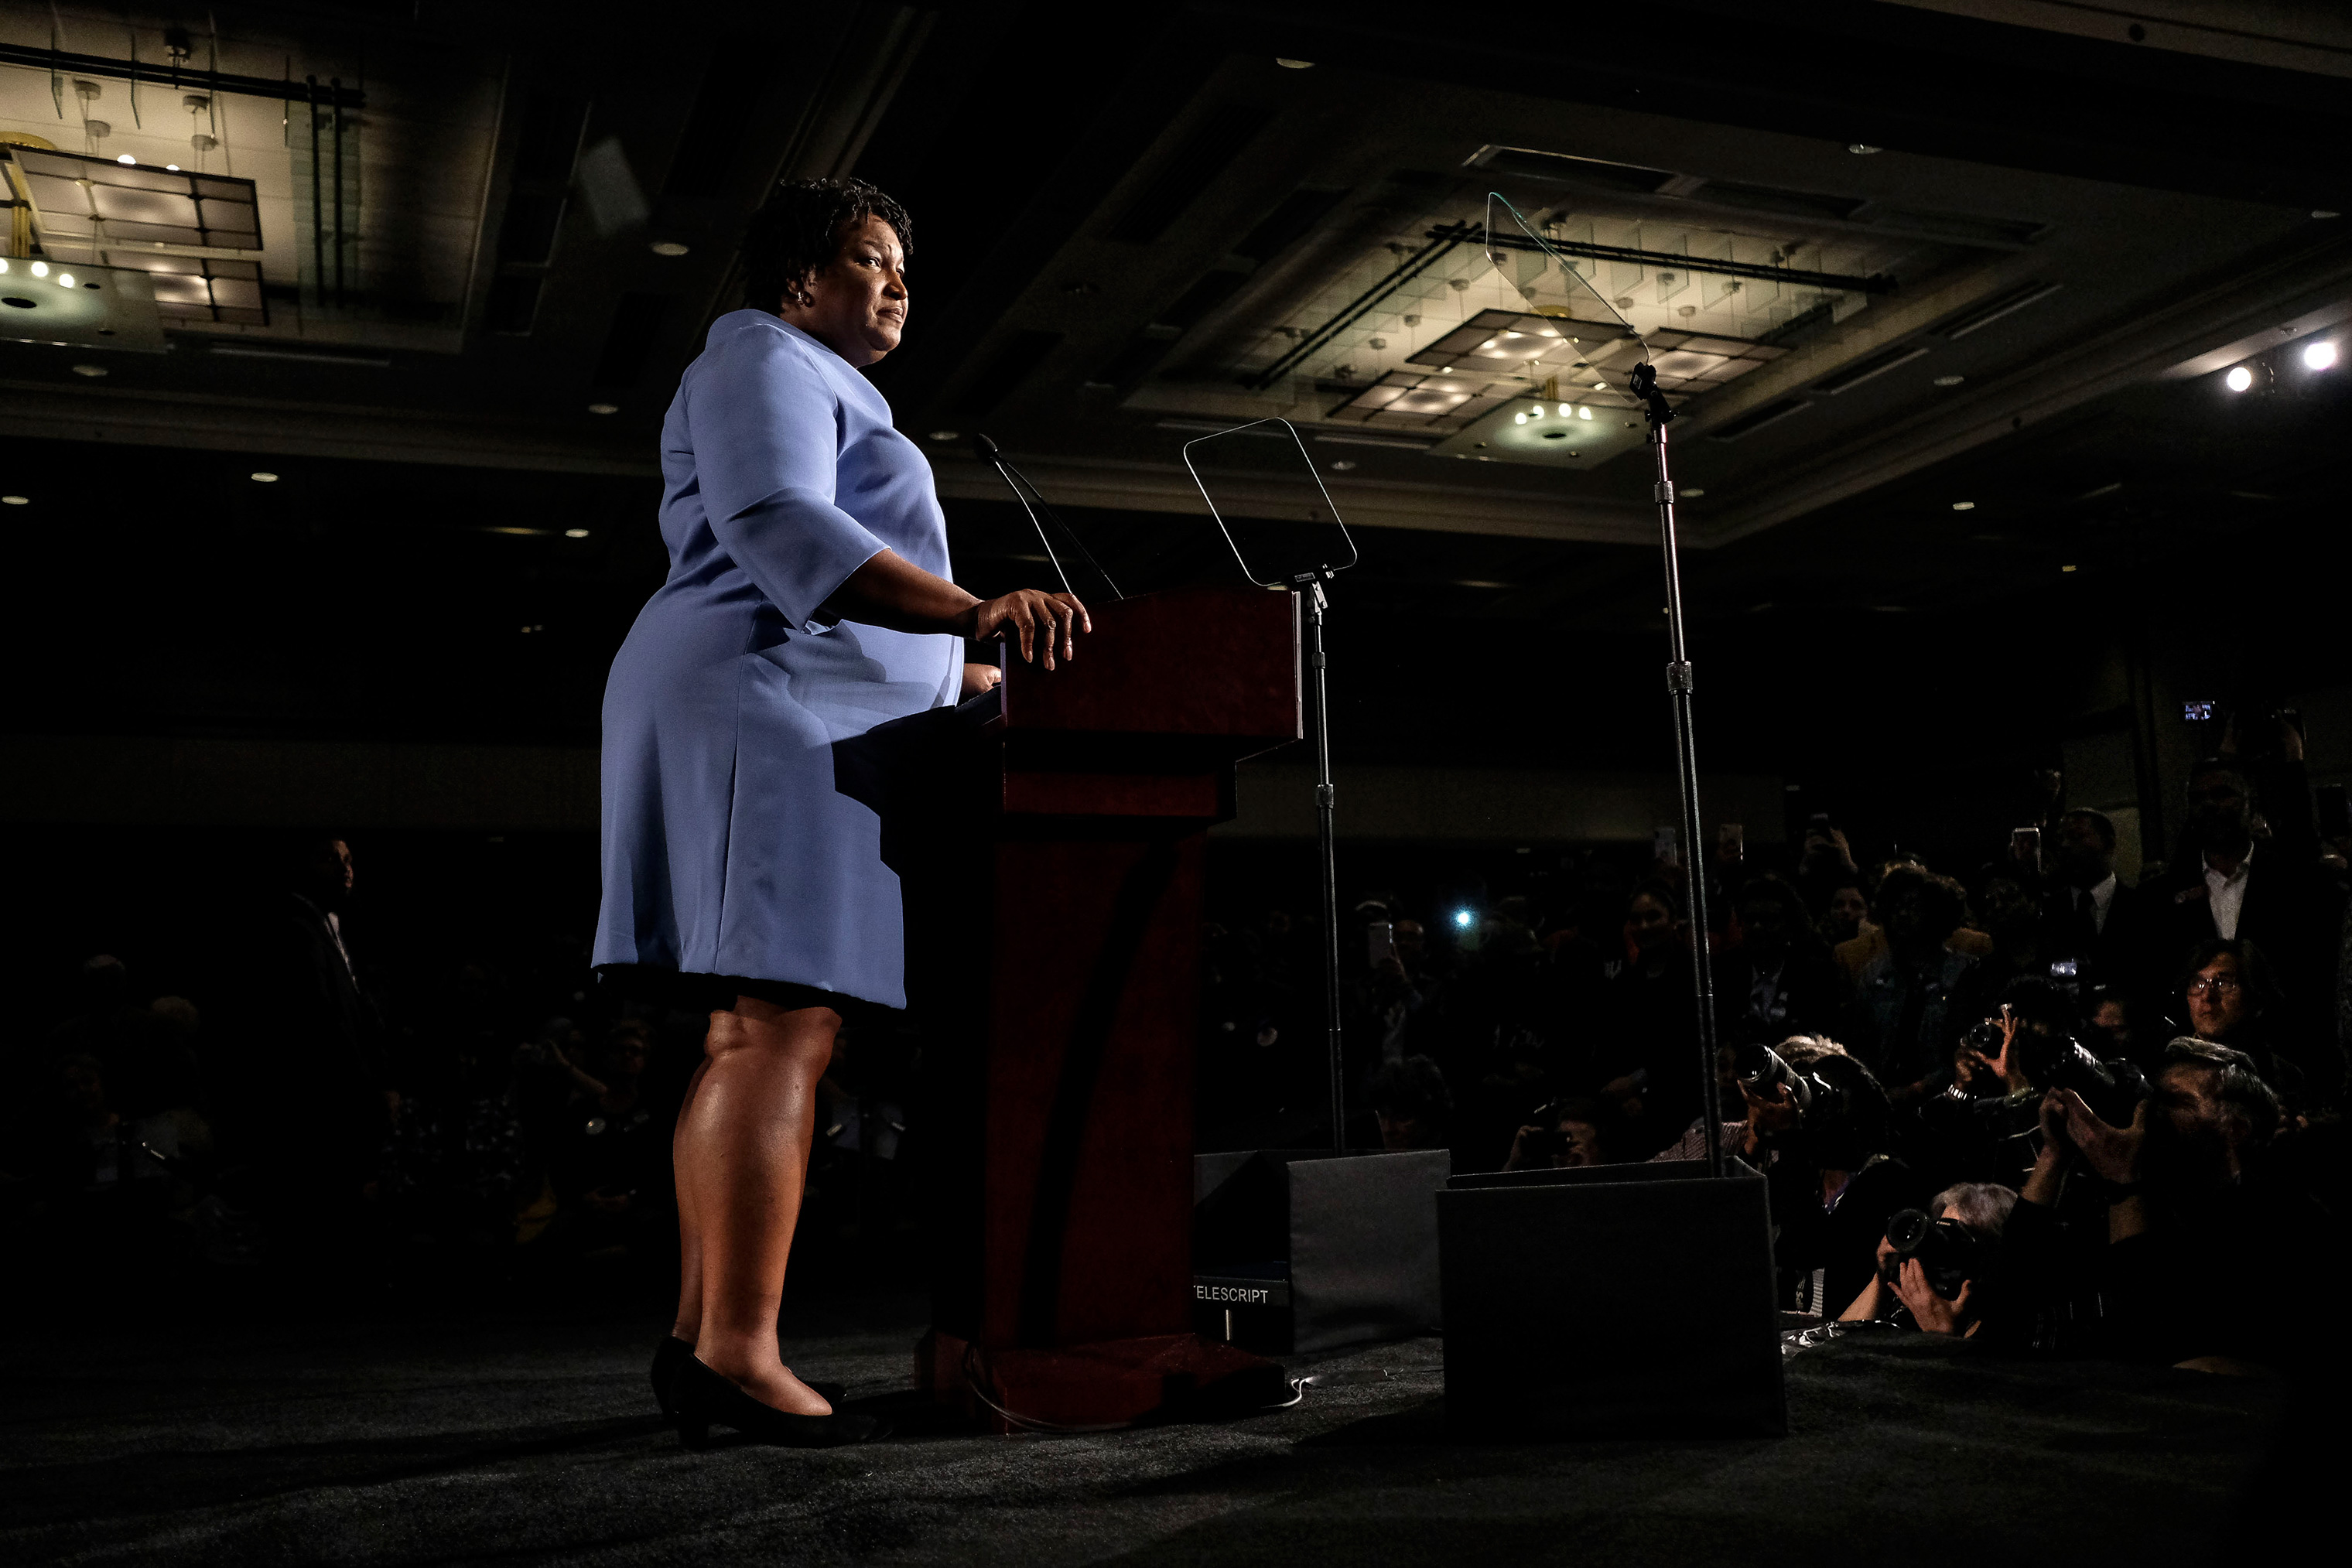 Democratic Gubernatorial candidate Stacey Abrams addresses supporters at an election watch party on November 6, 2018 in Atlanta, Georgia.